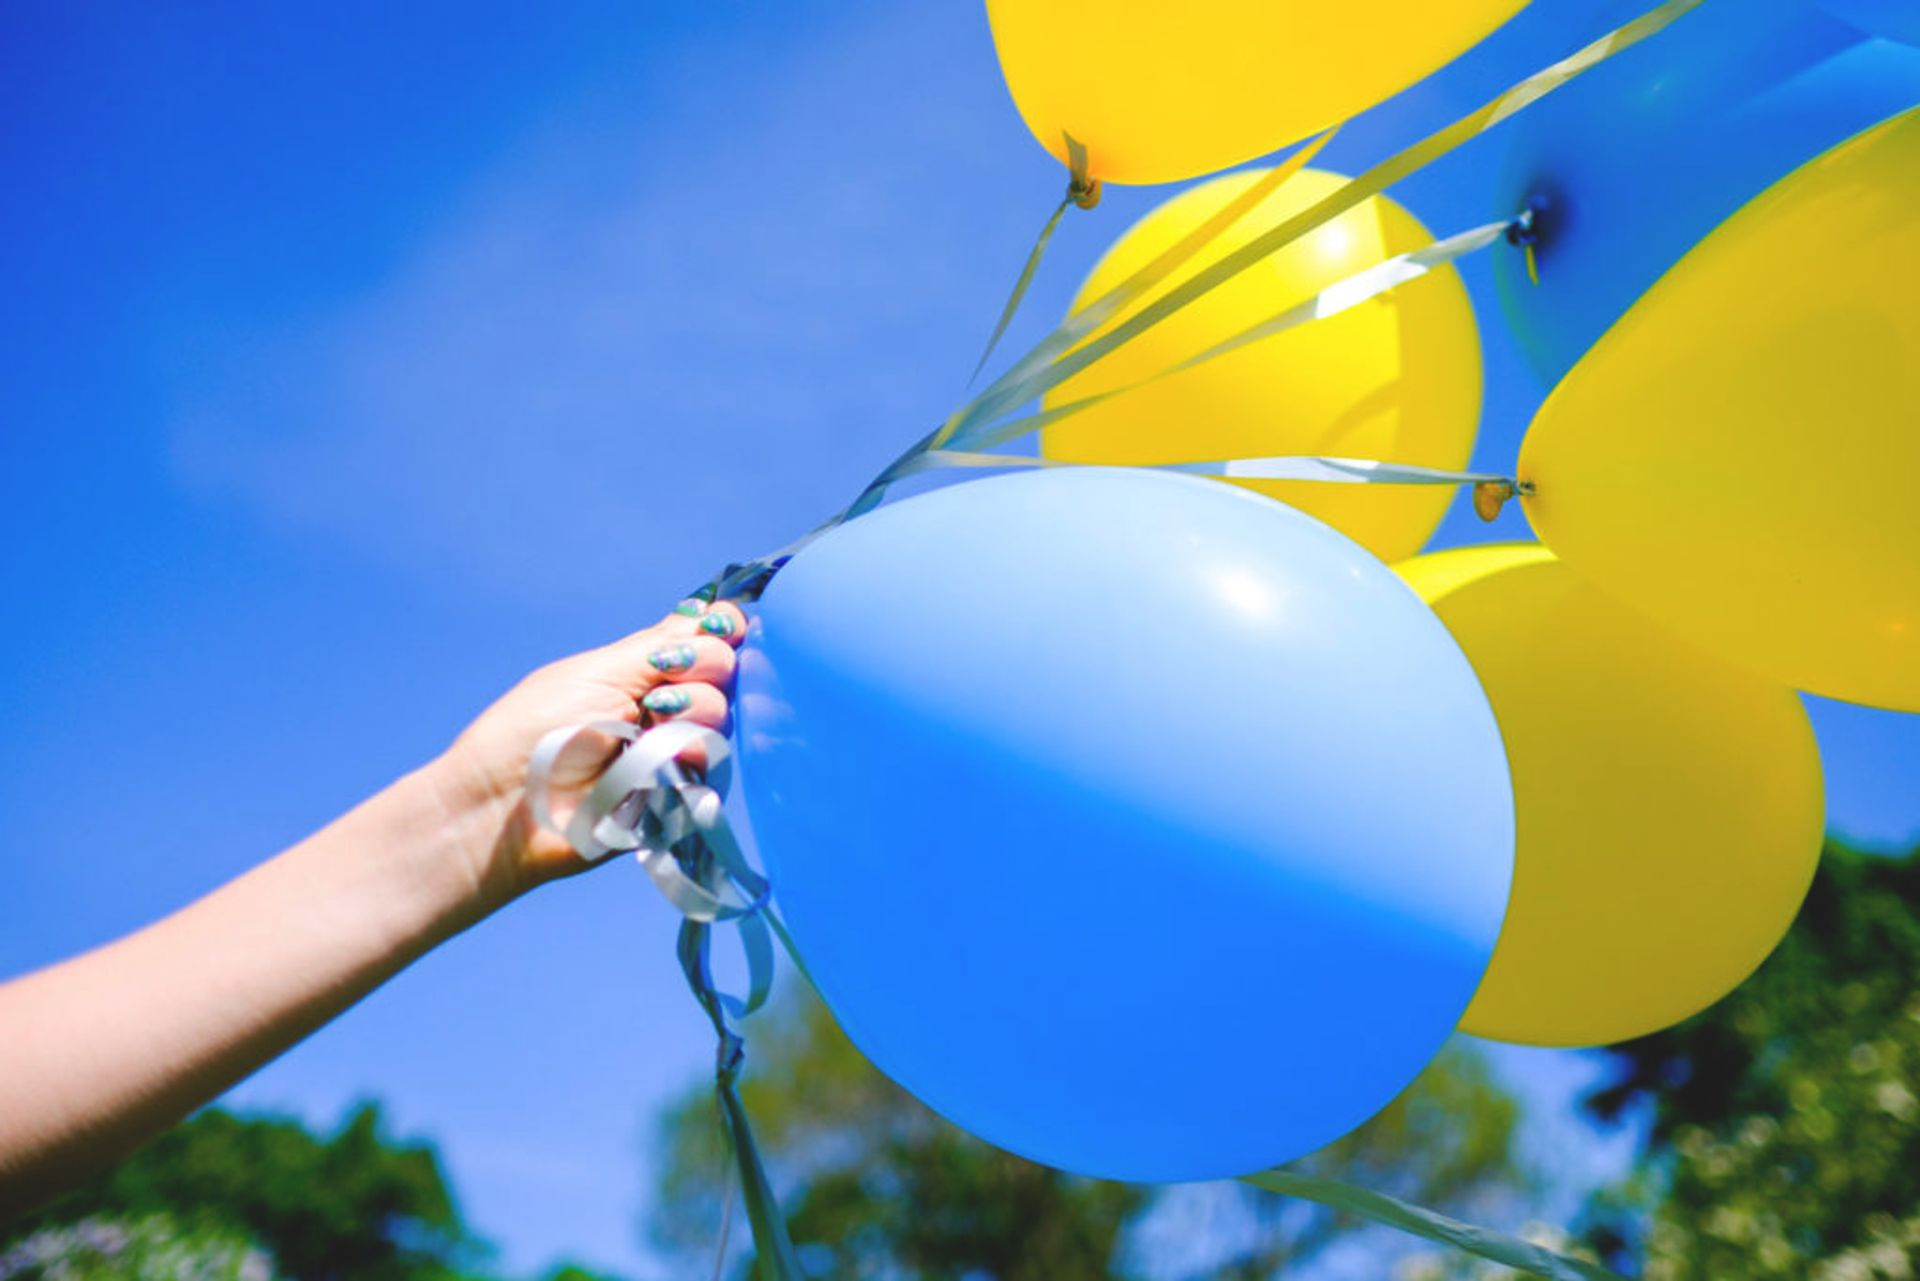 Blue and yellow balloons.